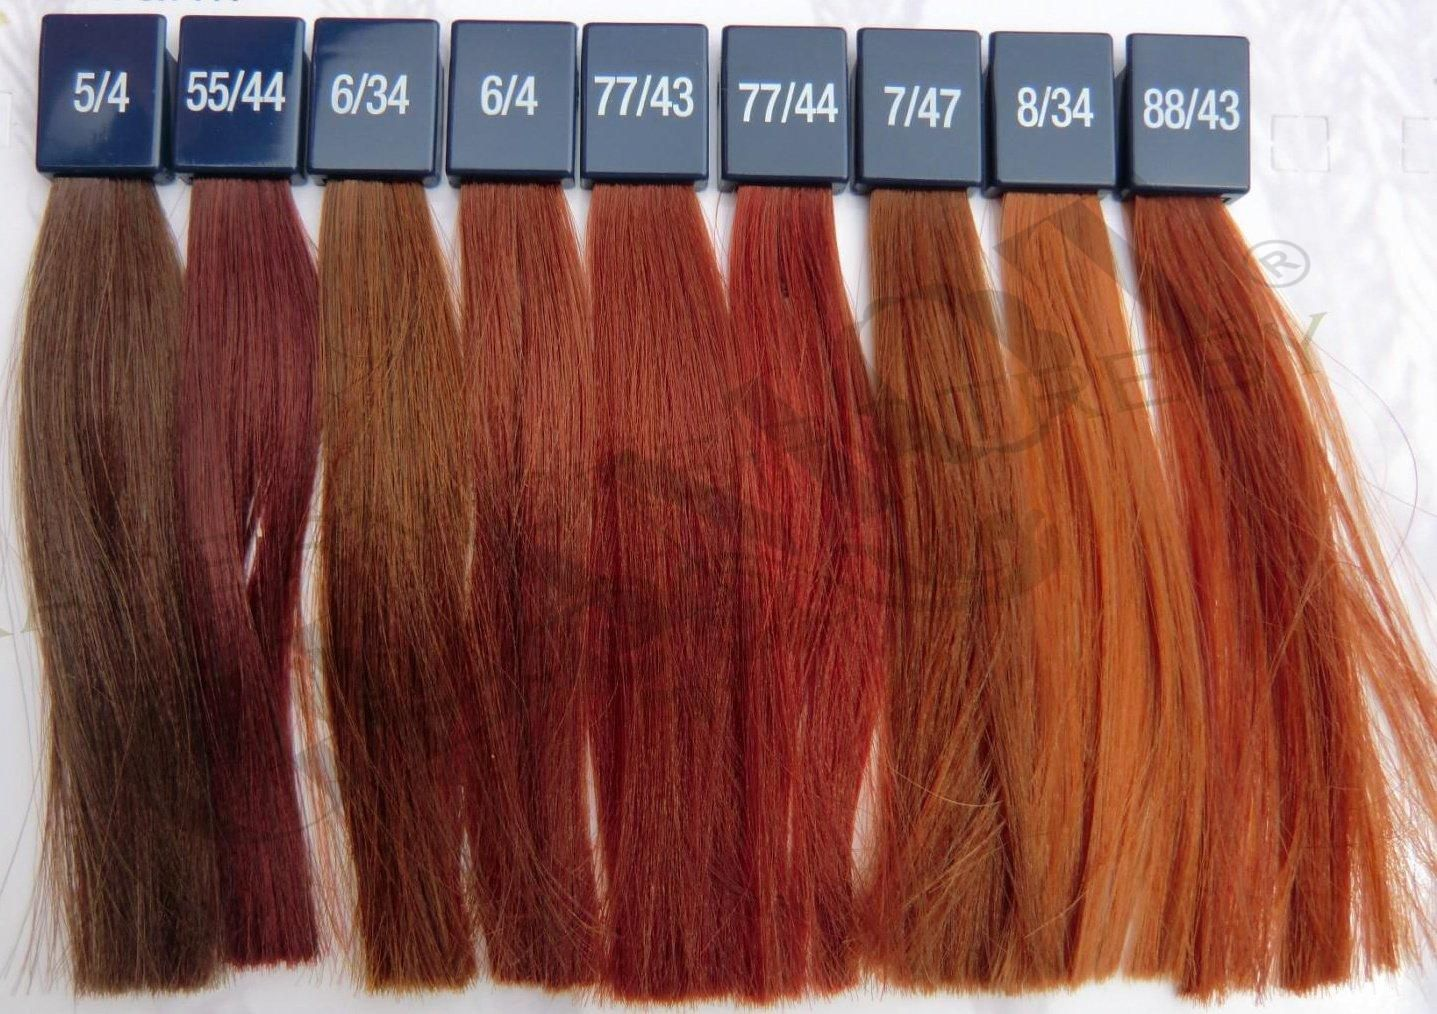 Wella koleston perfect vibrant reds glamot also beauty stuff rh pinterest